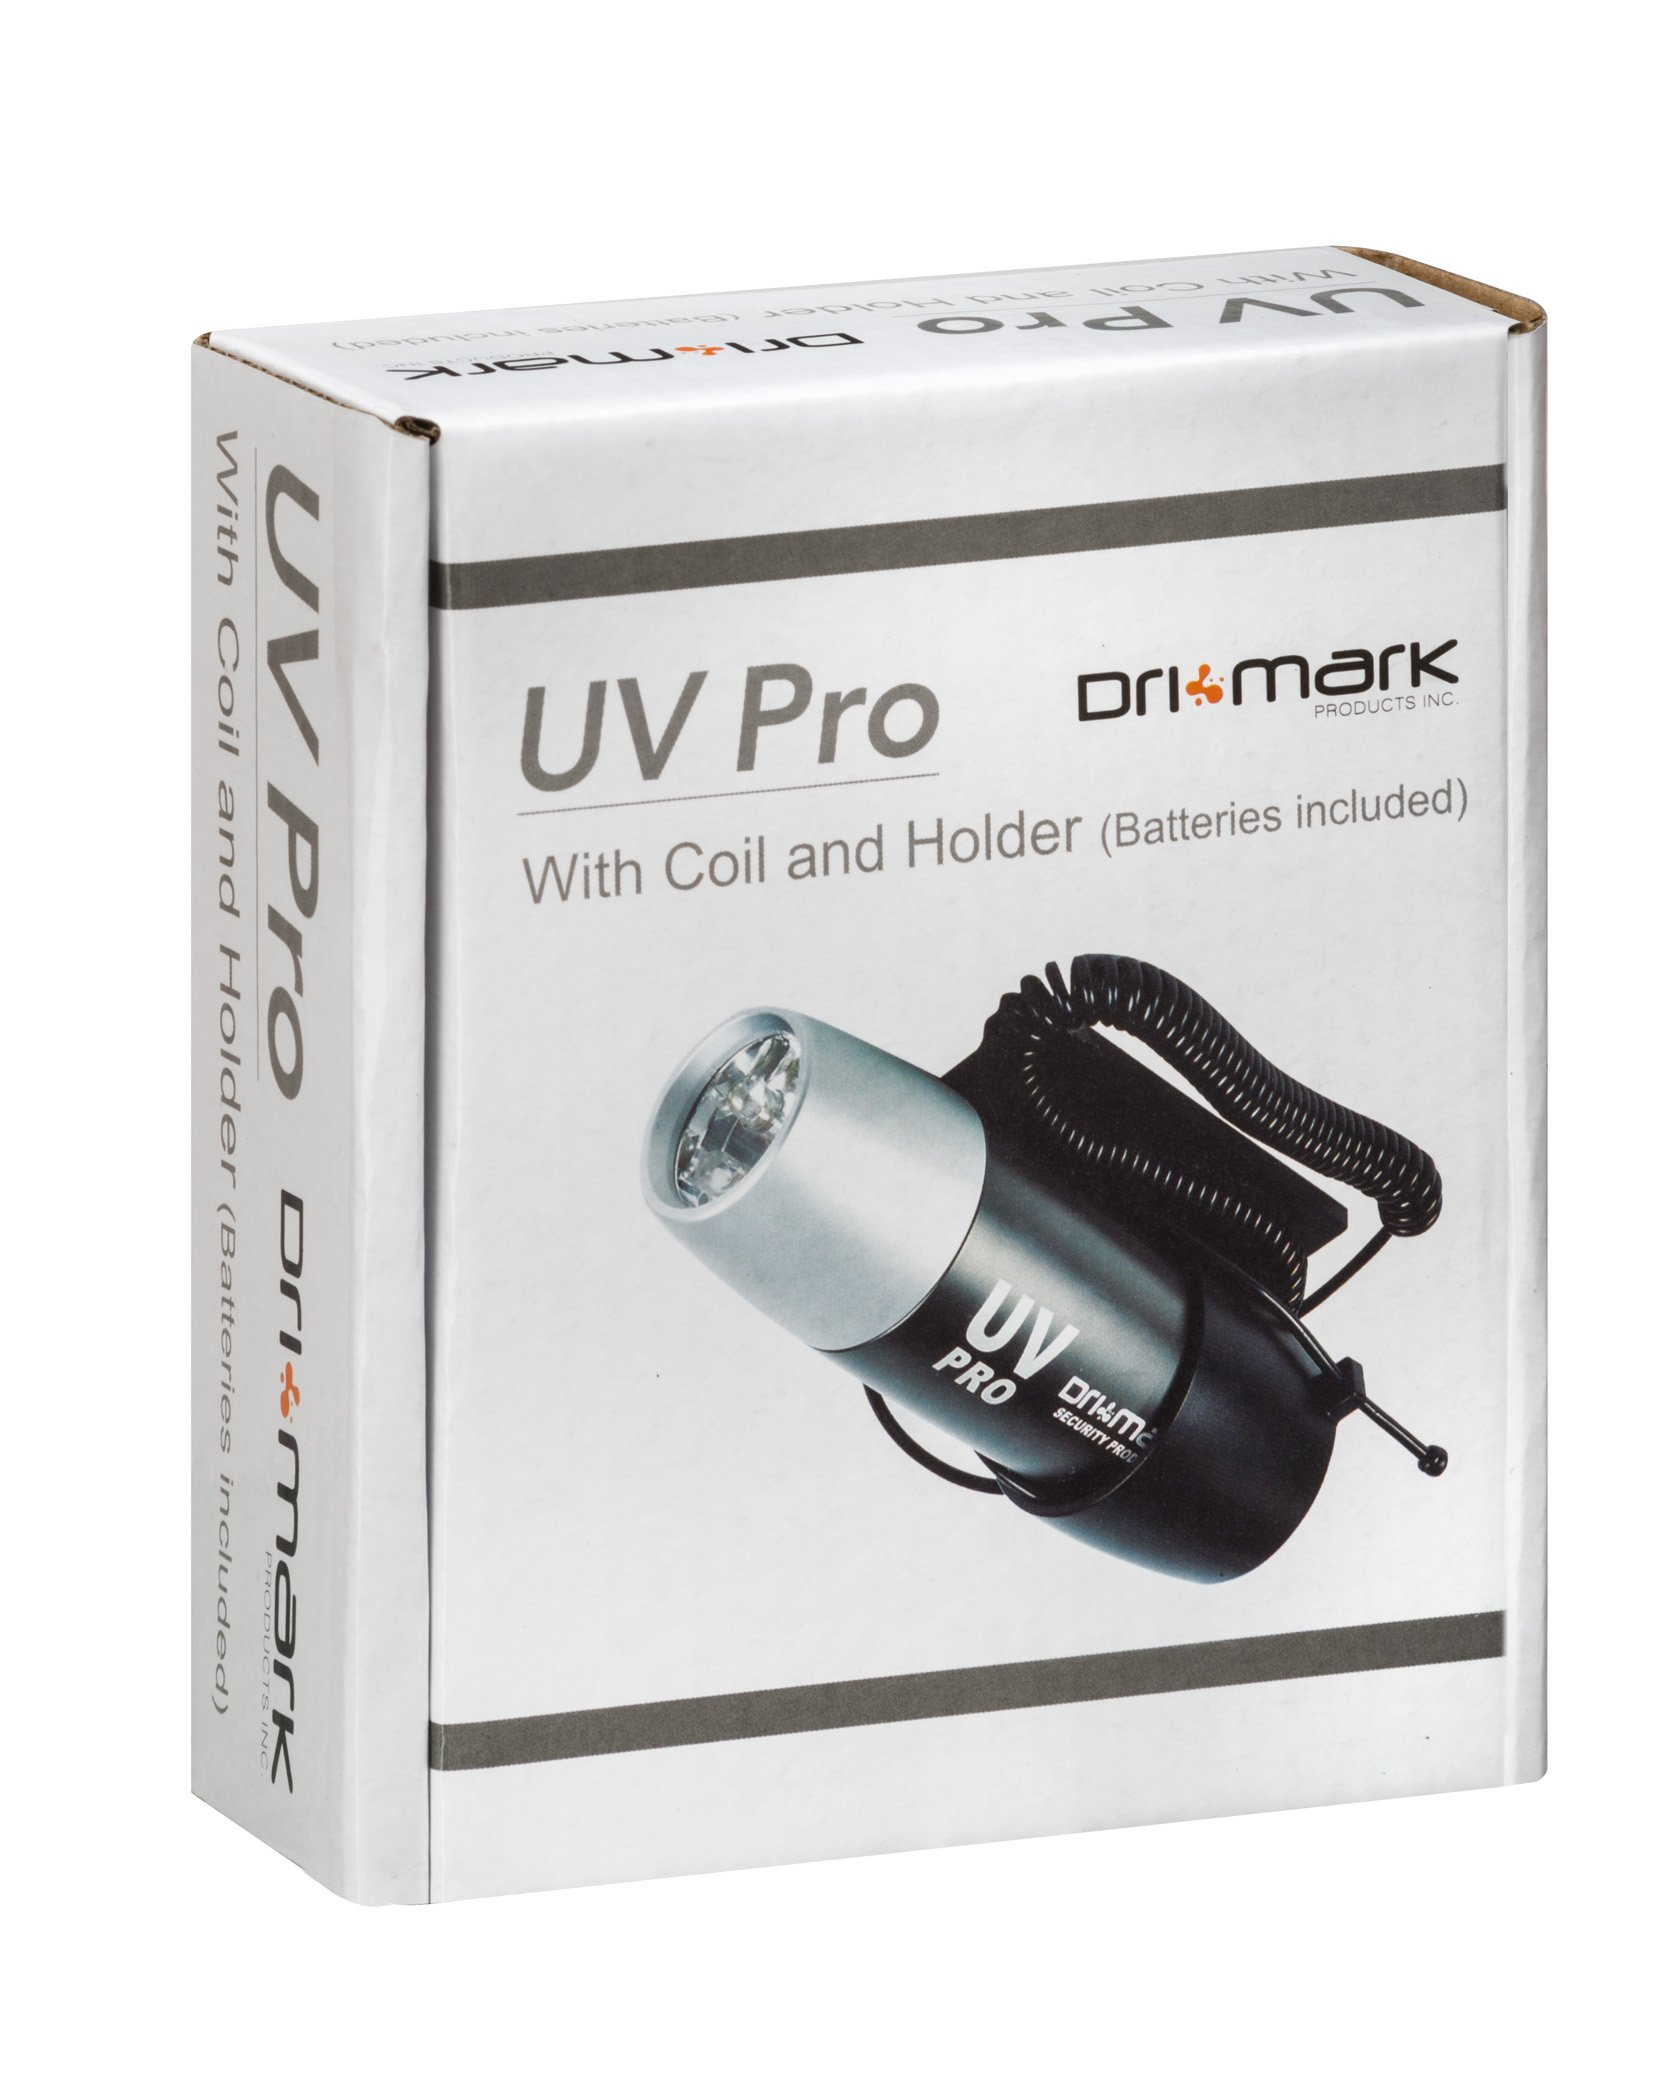 Drimark UV Pro with Coil and Holder, Gray/Silver (UVPROCL)